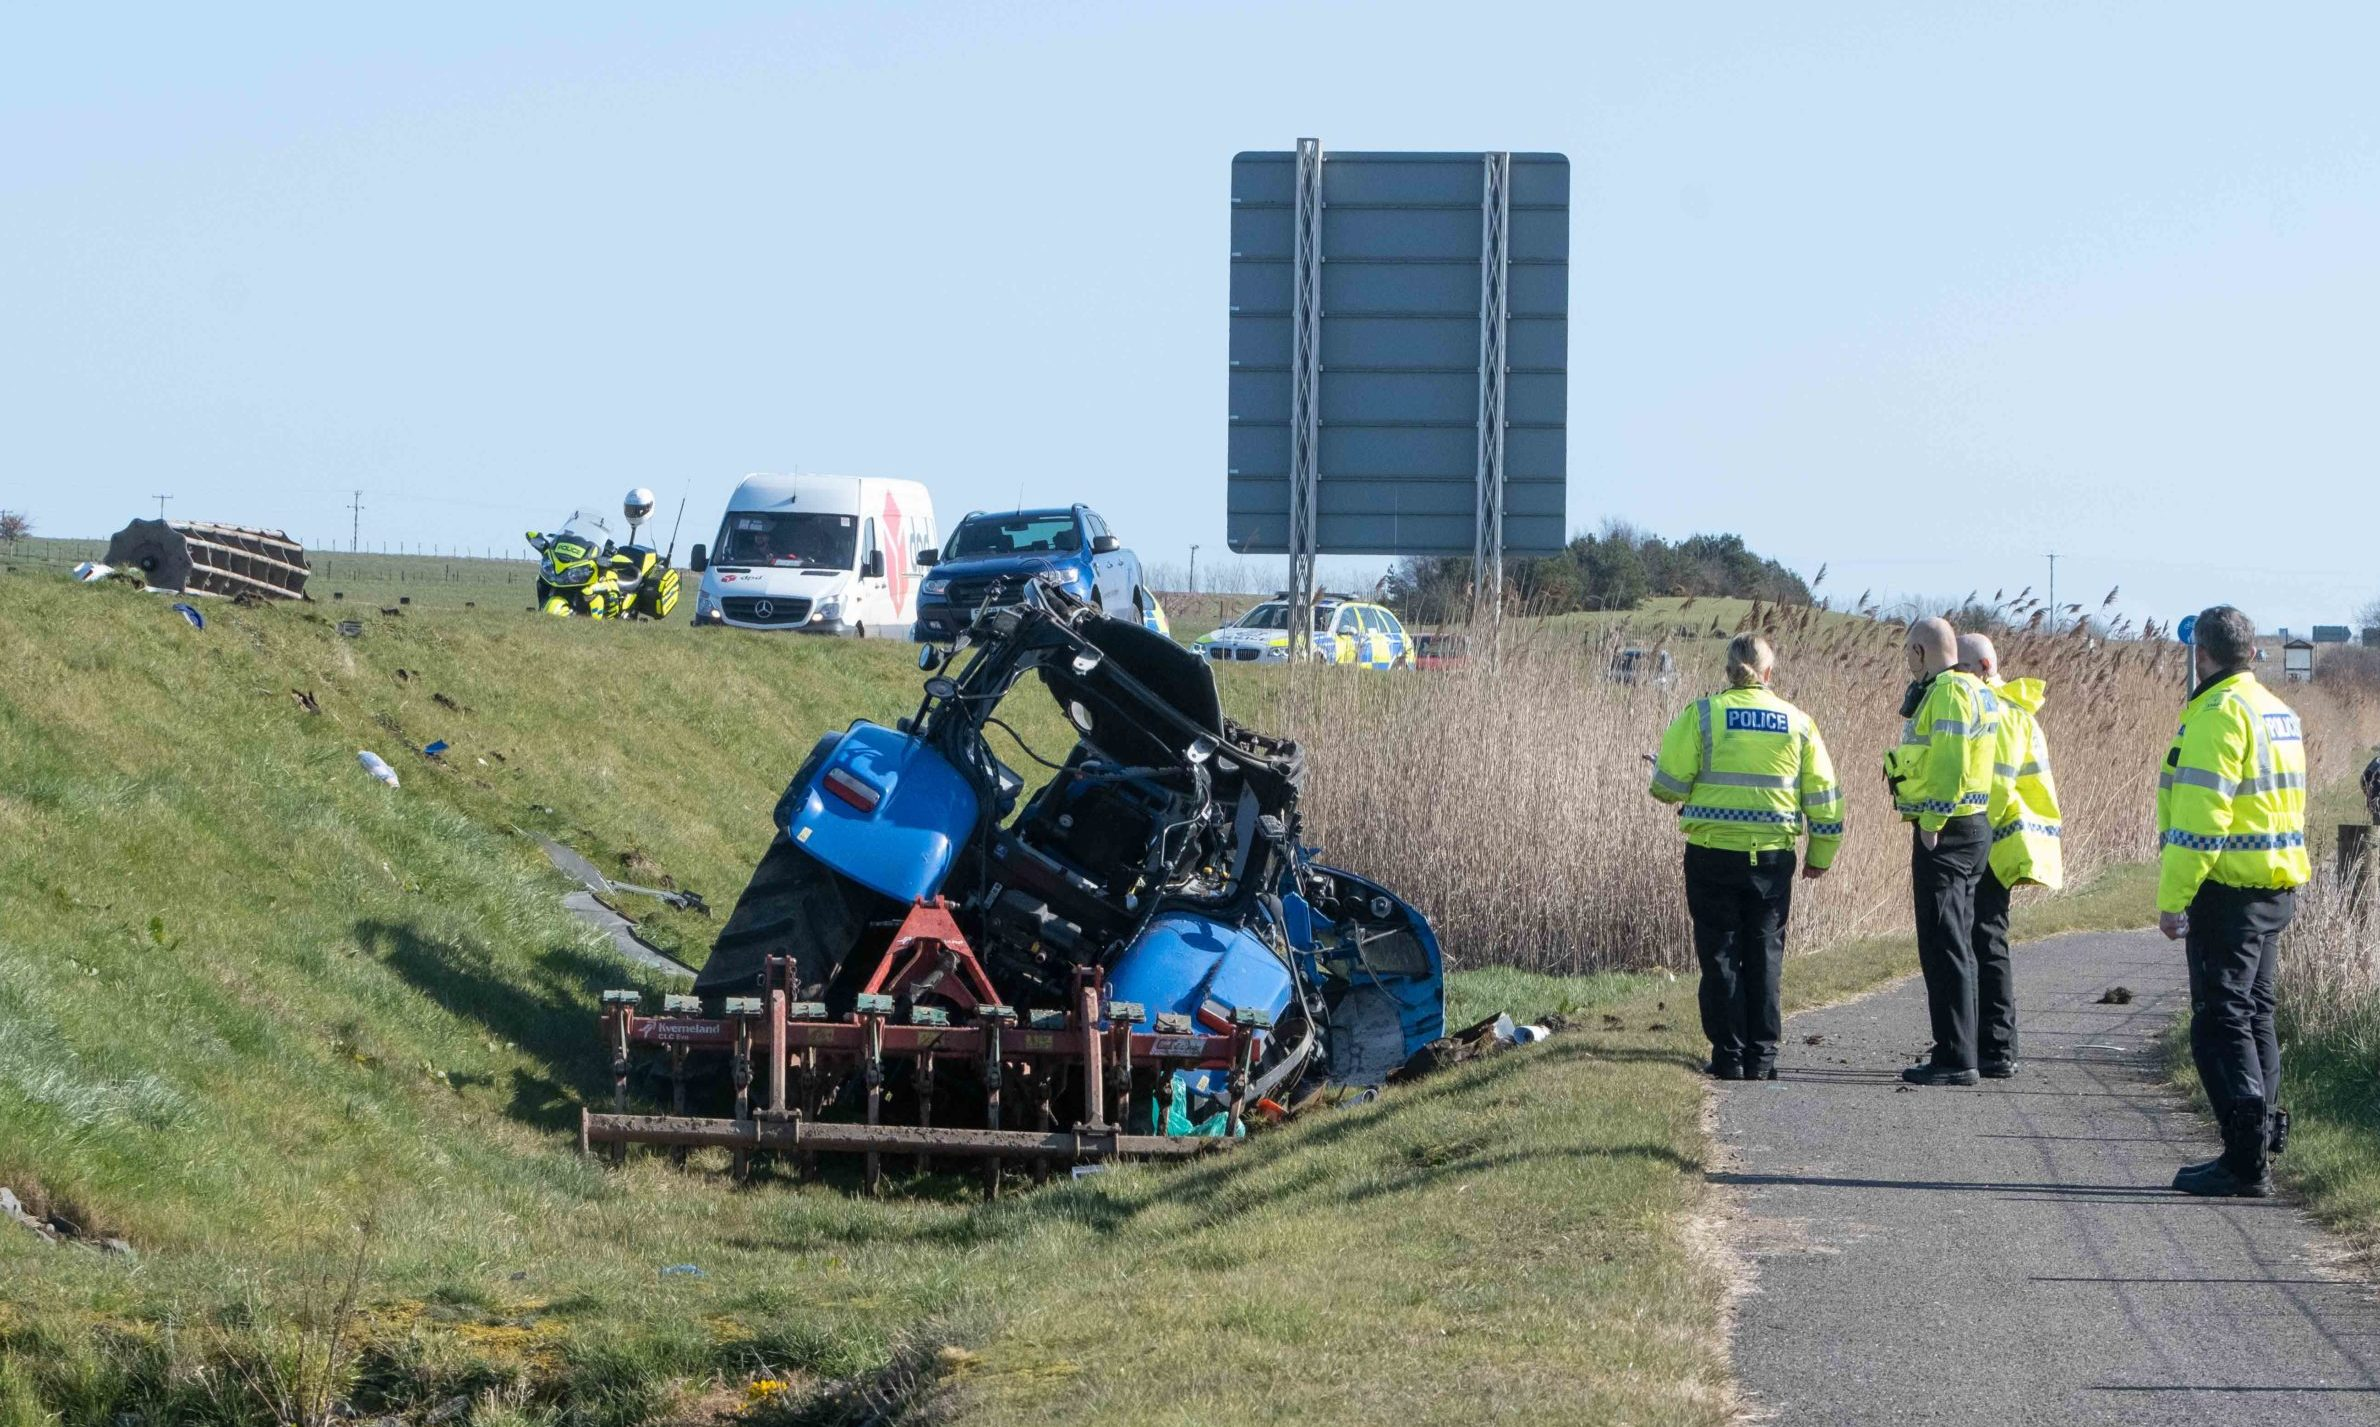 The scene of the crash on the A92 near Carnoustie.